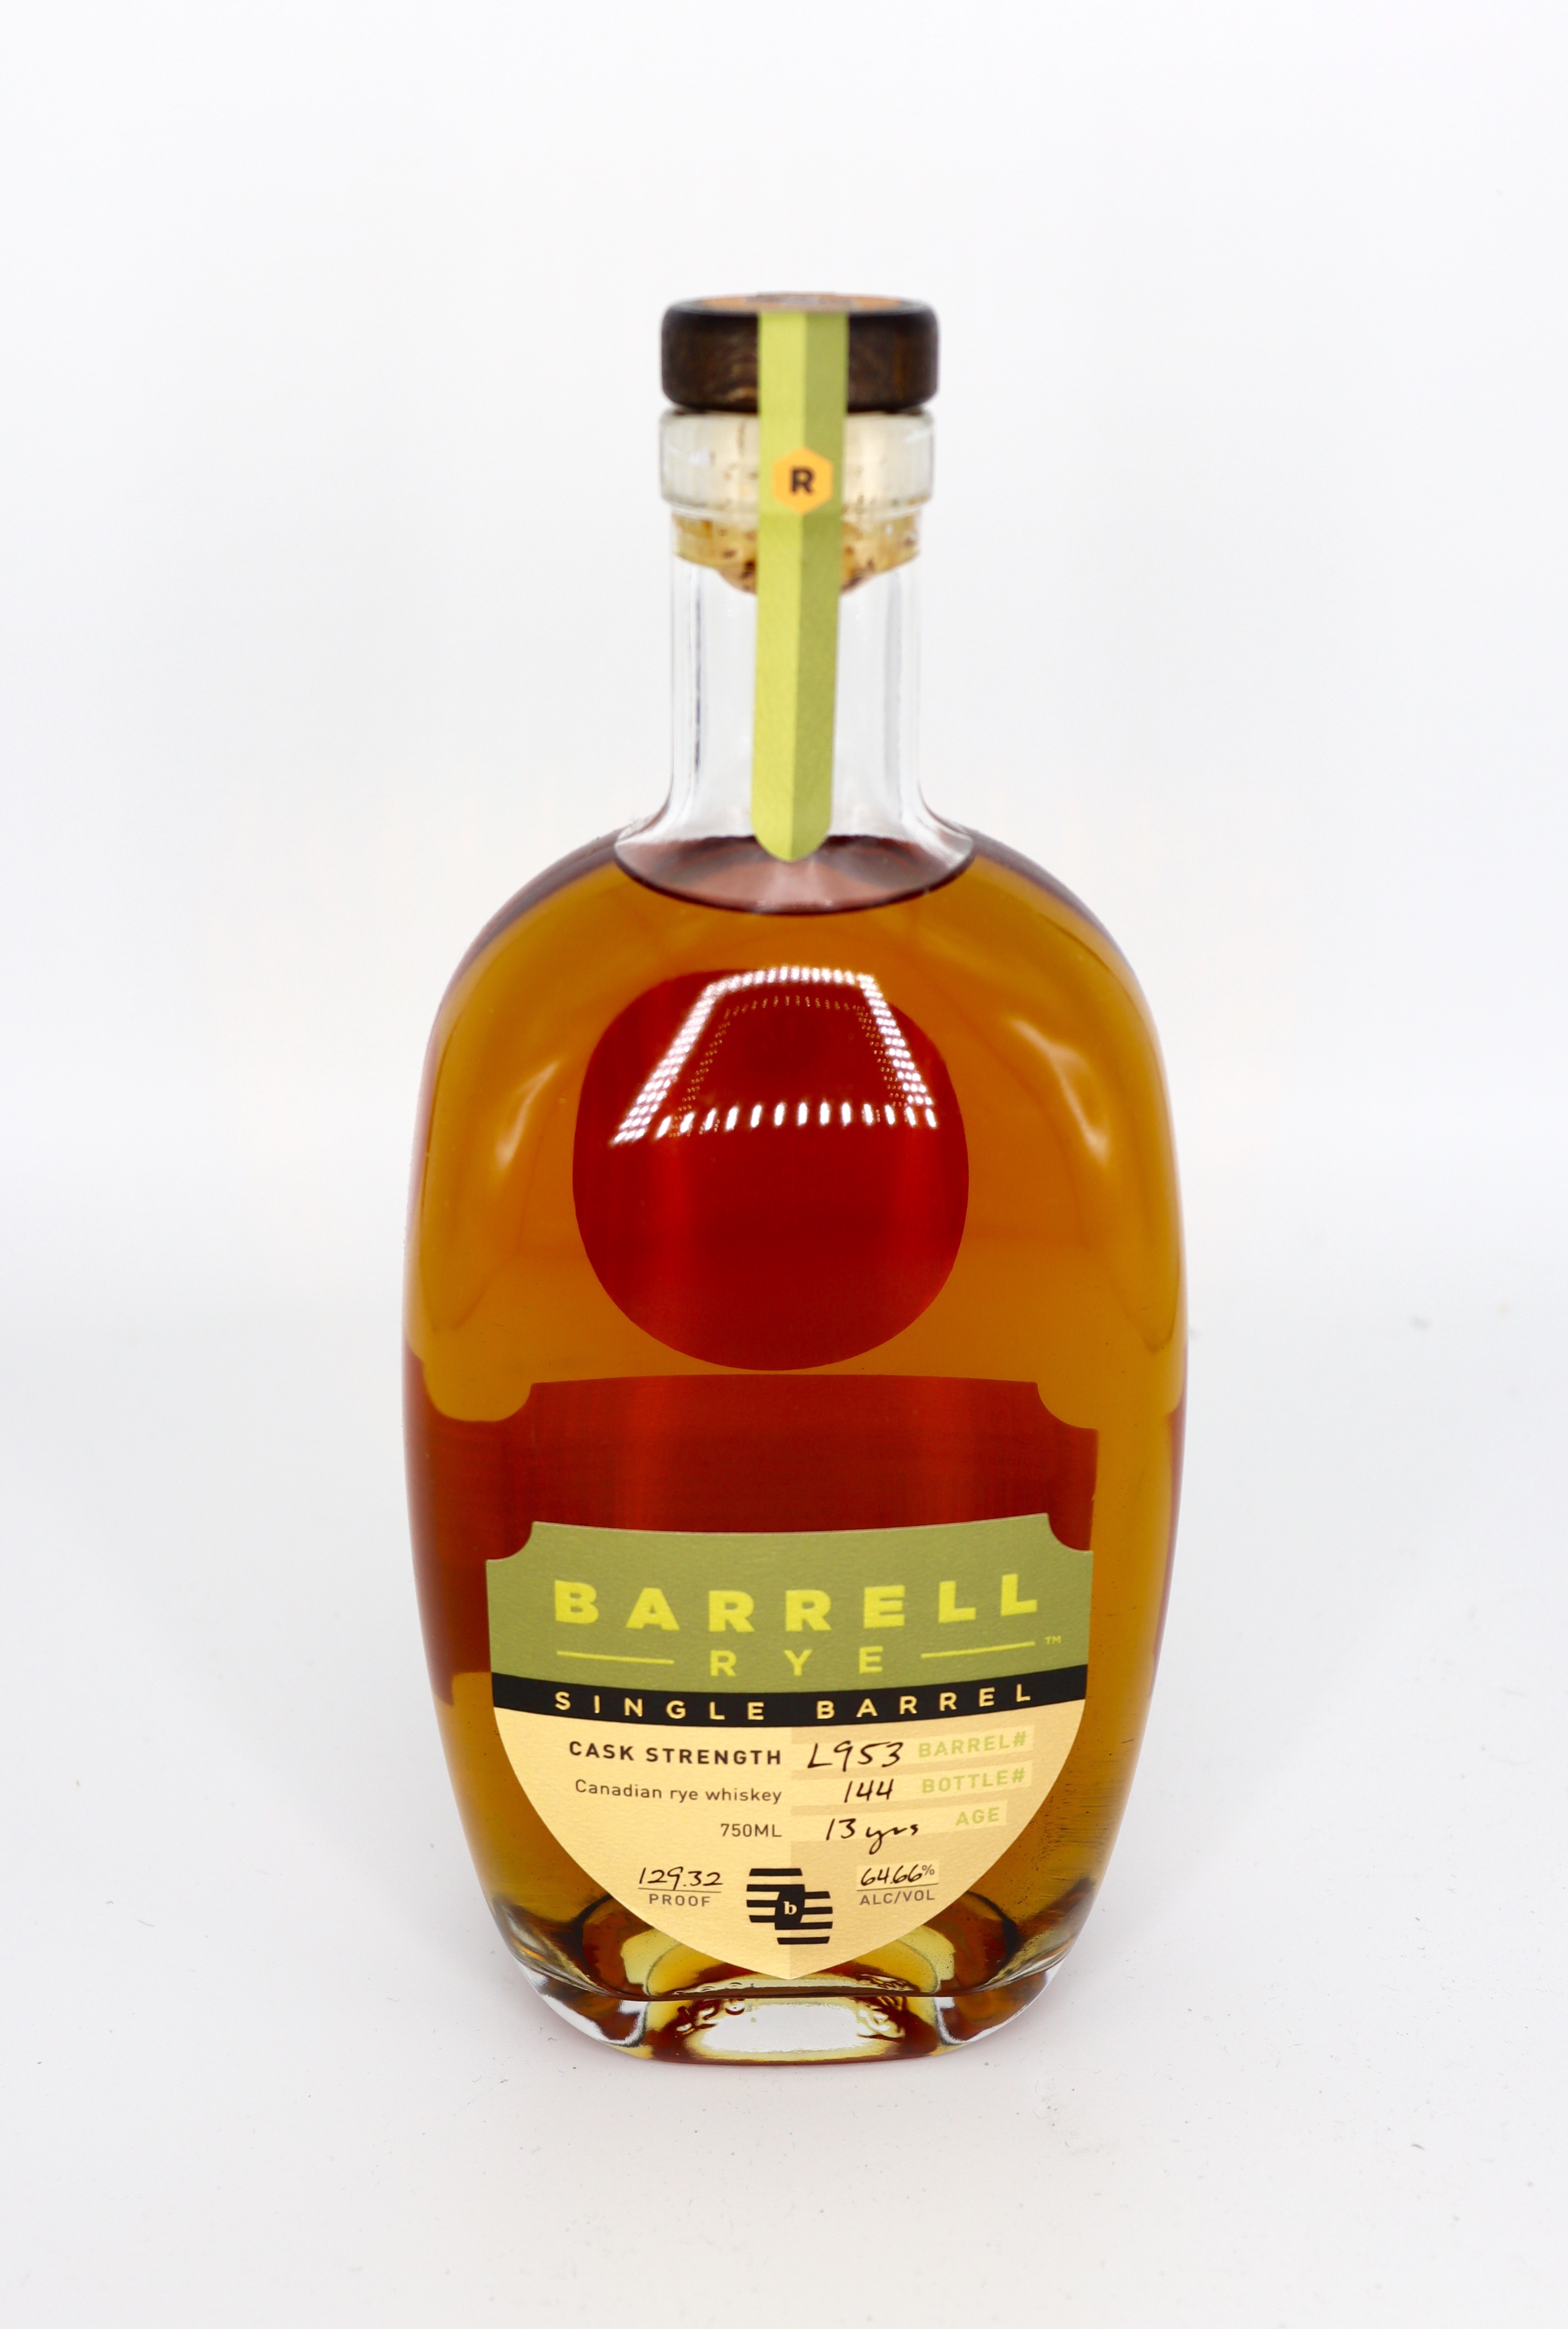 Barrell 13 year old RYE King of Picks Single Barrel Straight Cask Strength only 126btls 129.32 proof